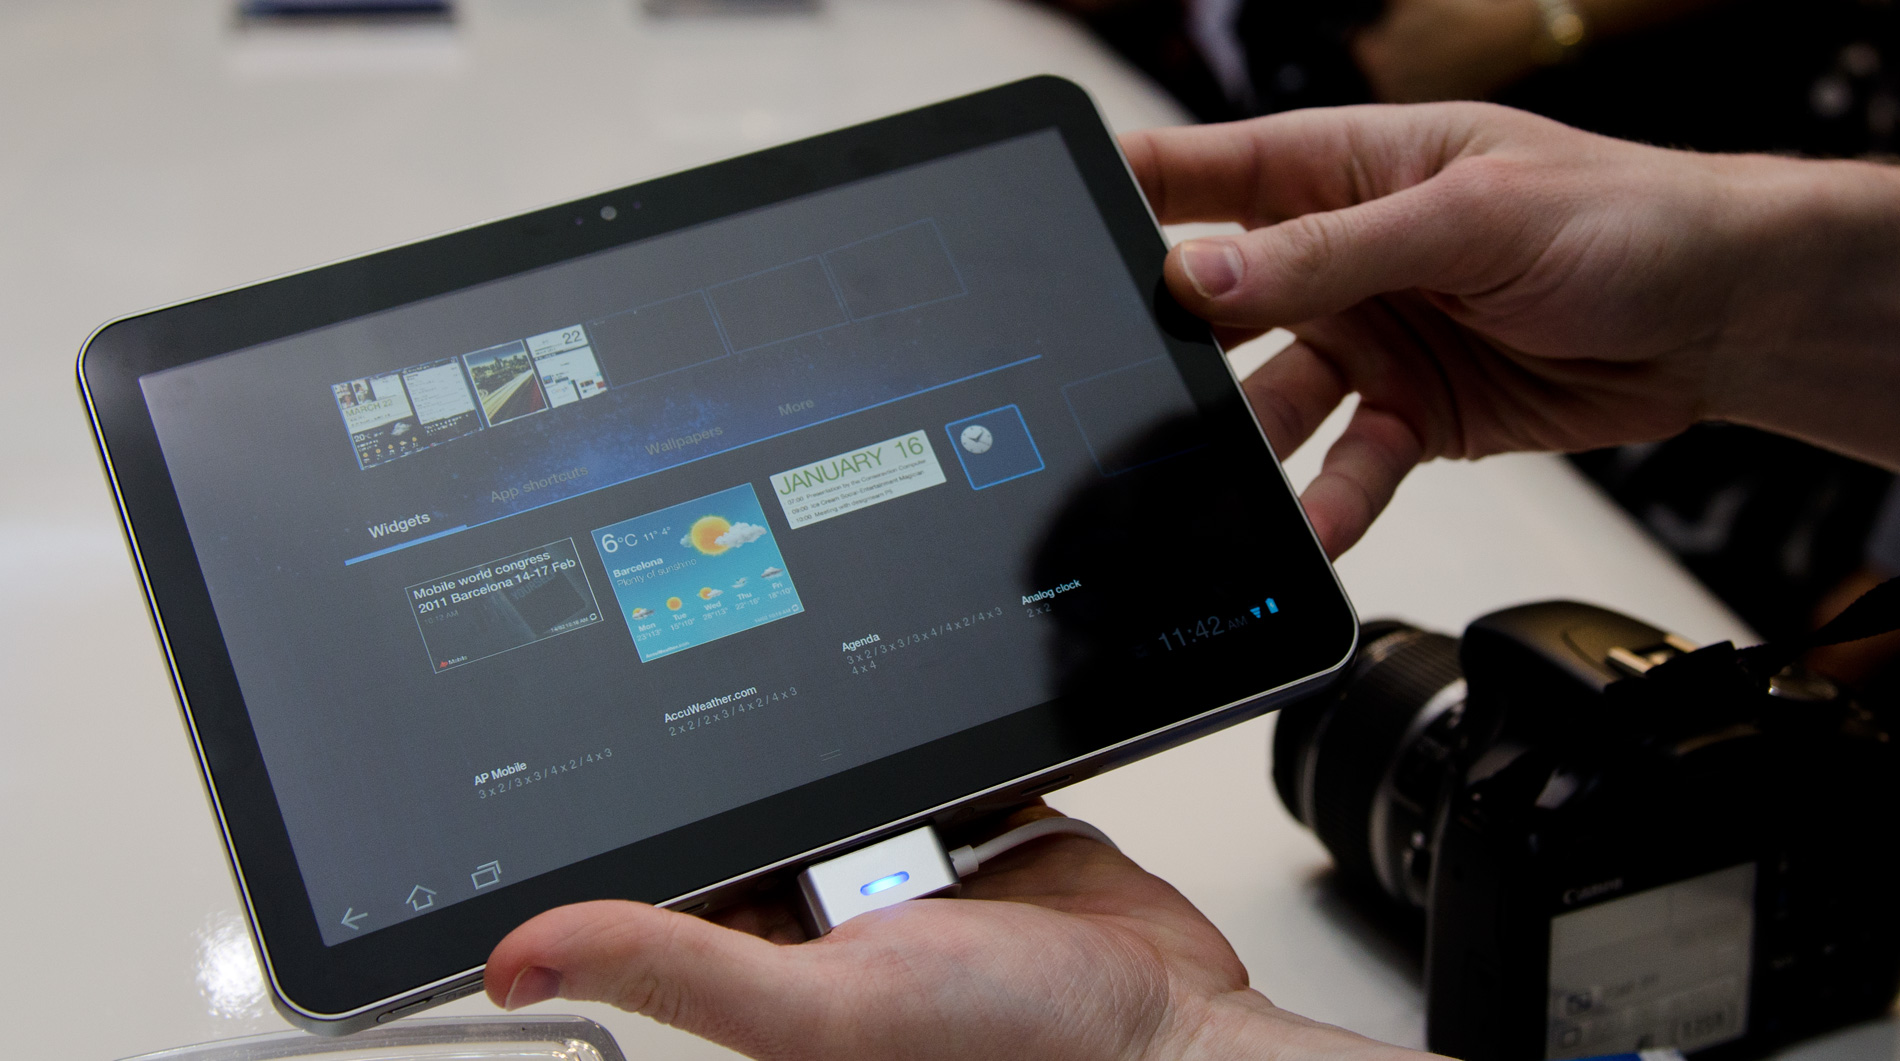 samsung 39 s galaxy tab 10 1 8 9 smaller than ipad 2 competitively priced. Black Bedroom Furniture Sets. Home Design Ideas